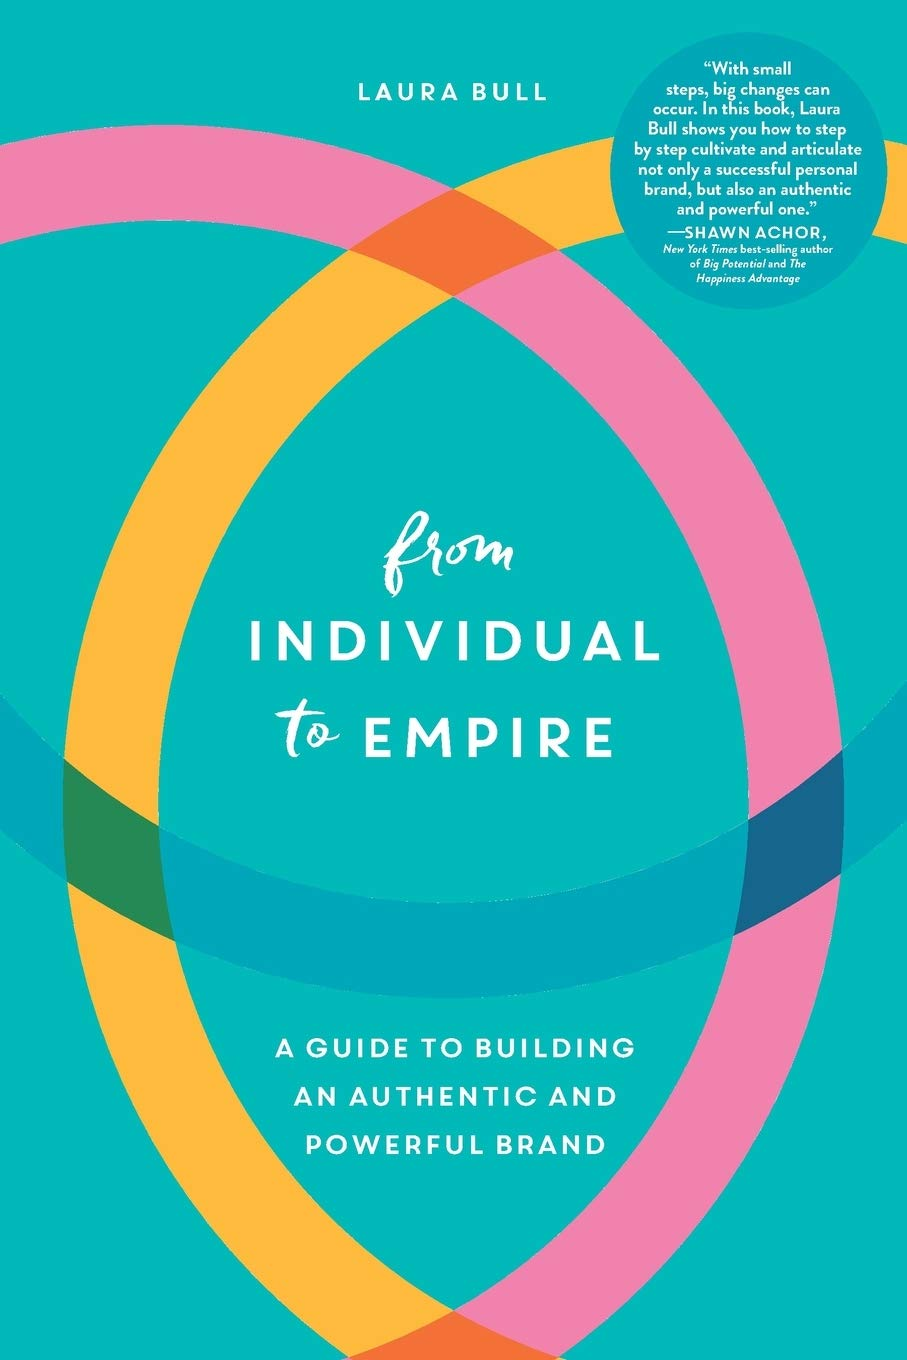 From individual to empire by Laura Bull